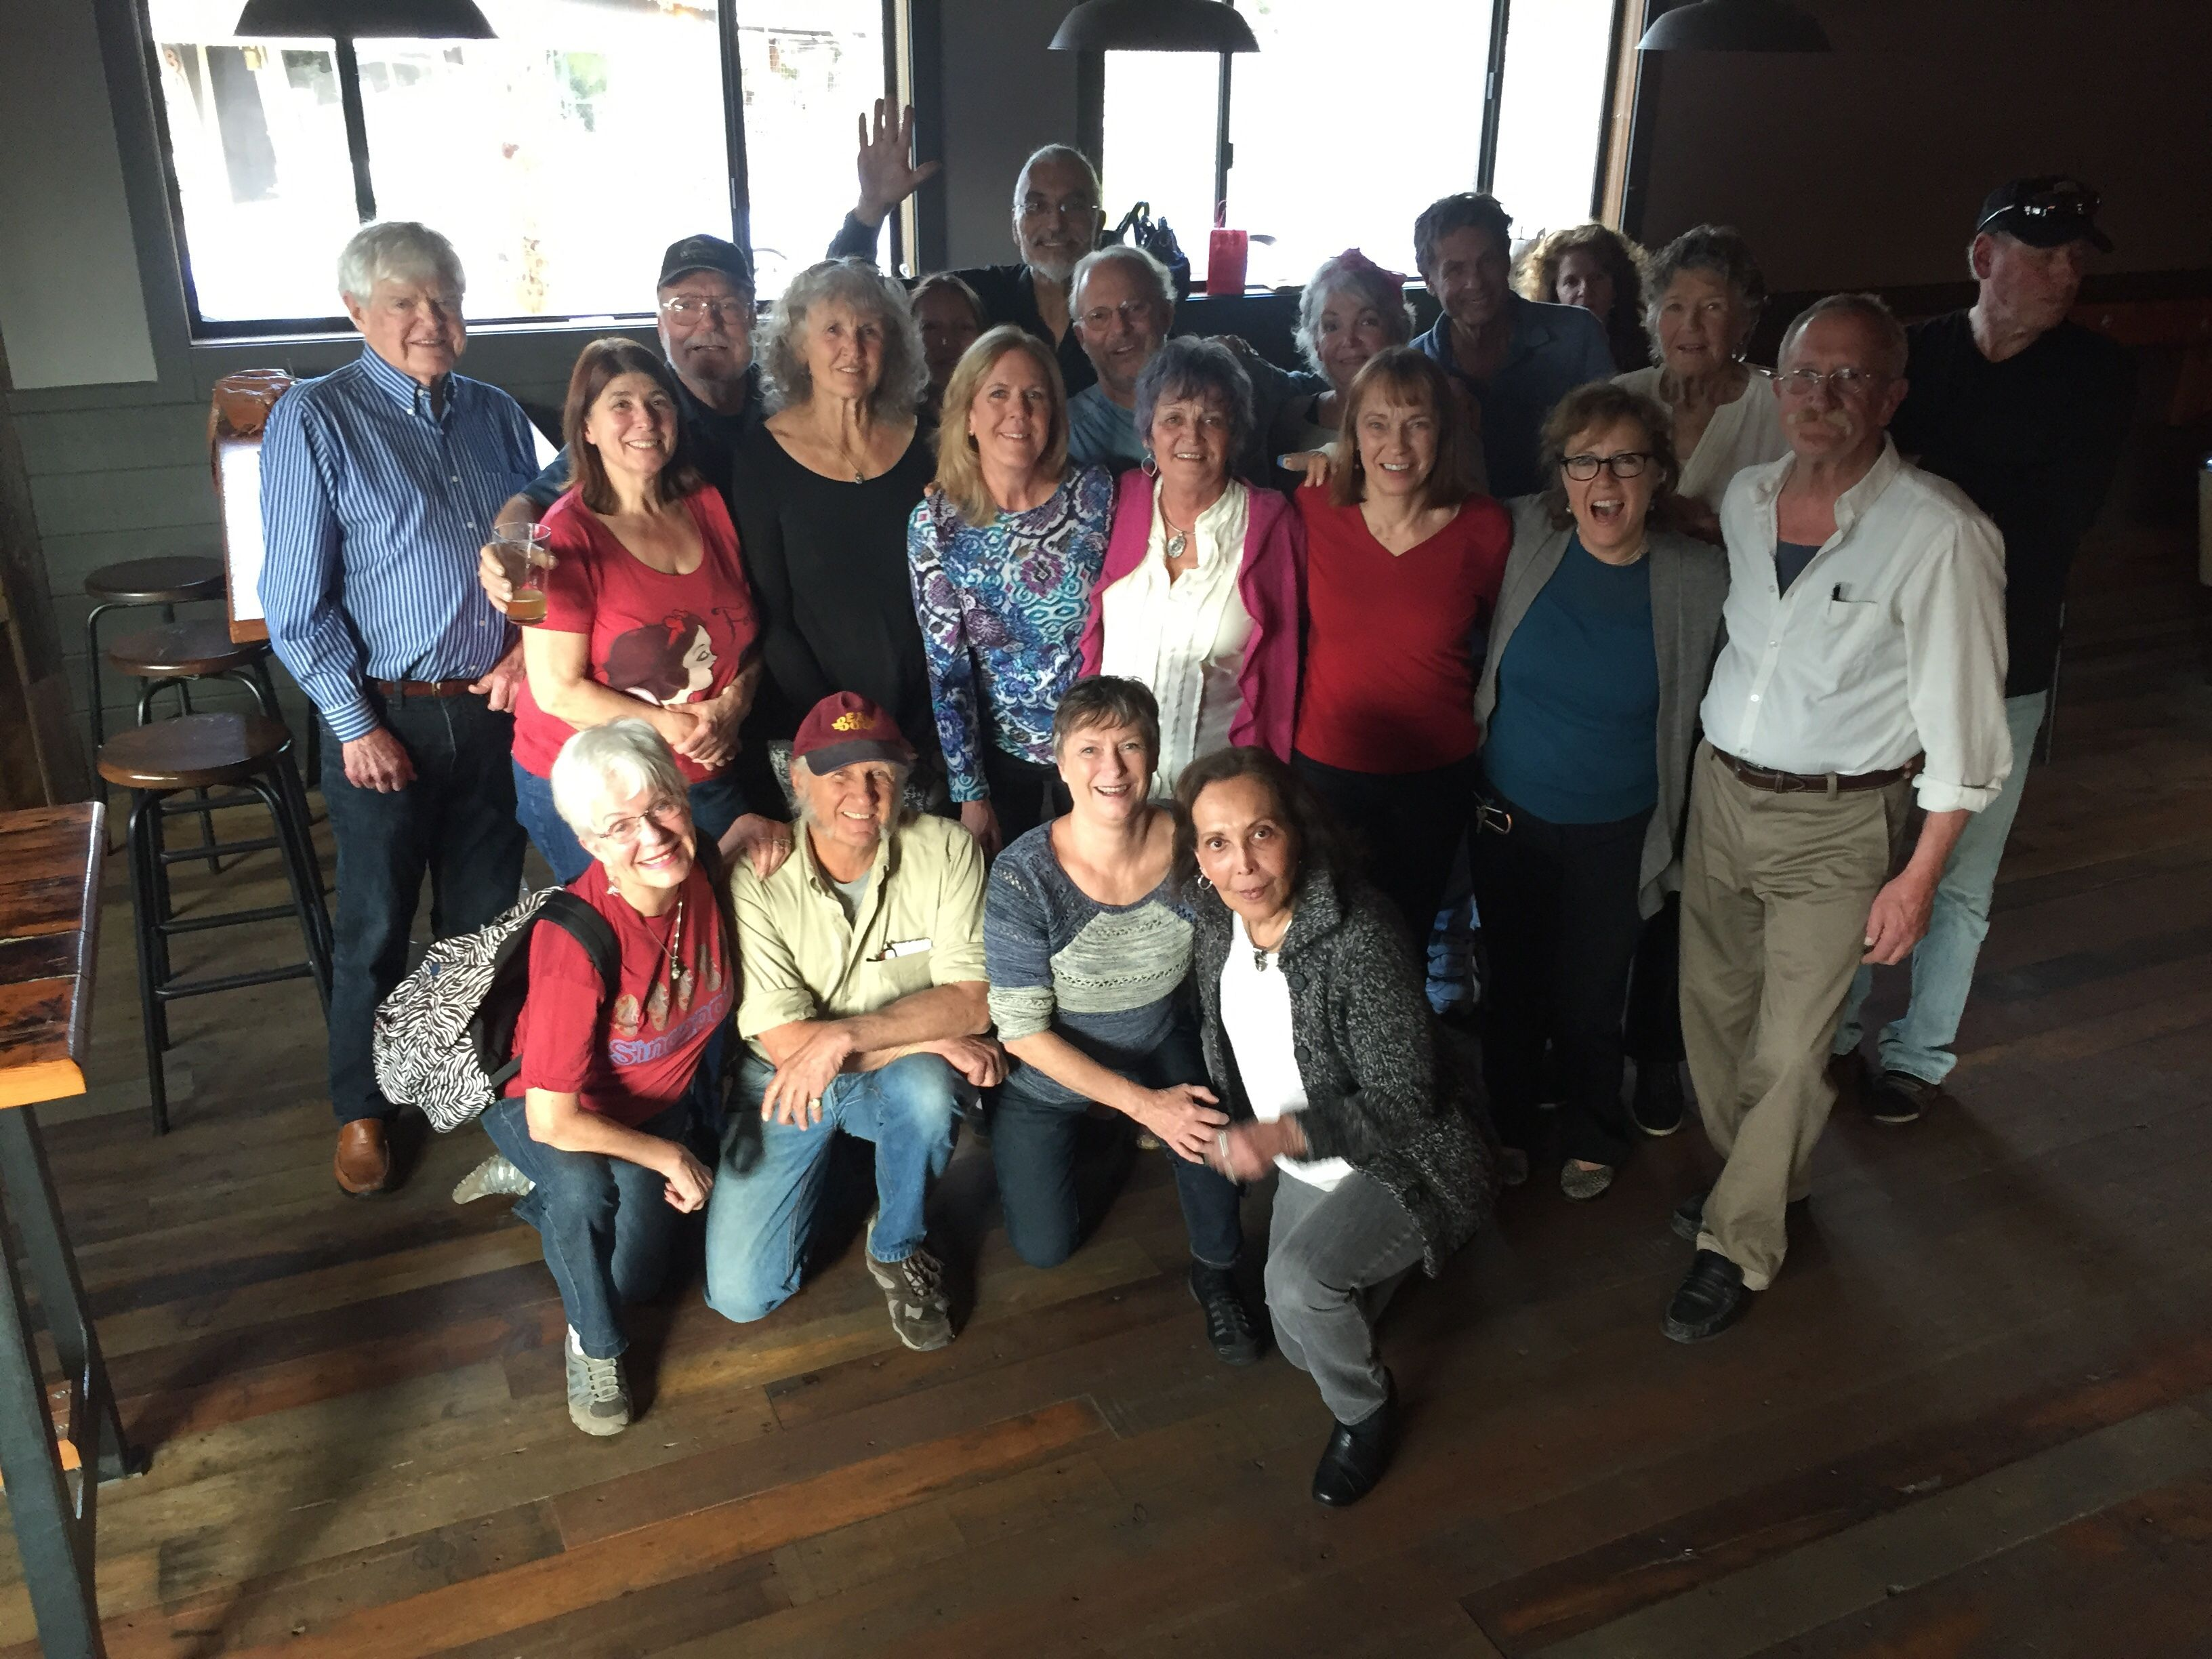 meet santa rosa county singles Breakfast group - meet at restaurants for food & conversation  dining in singles  - dine with single women for potluck suppers in homes  learn about santa rosa  and sonoma county, its culture and lifestyle, and to develop new friendships.